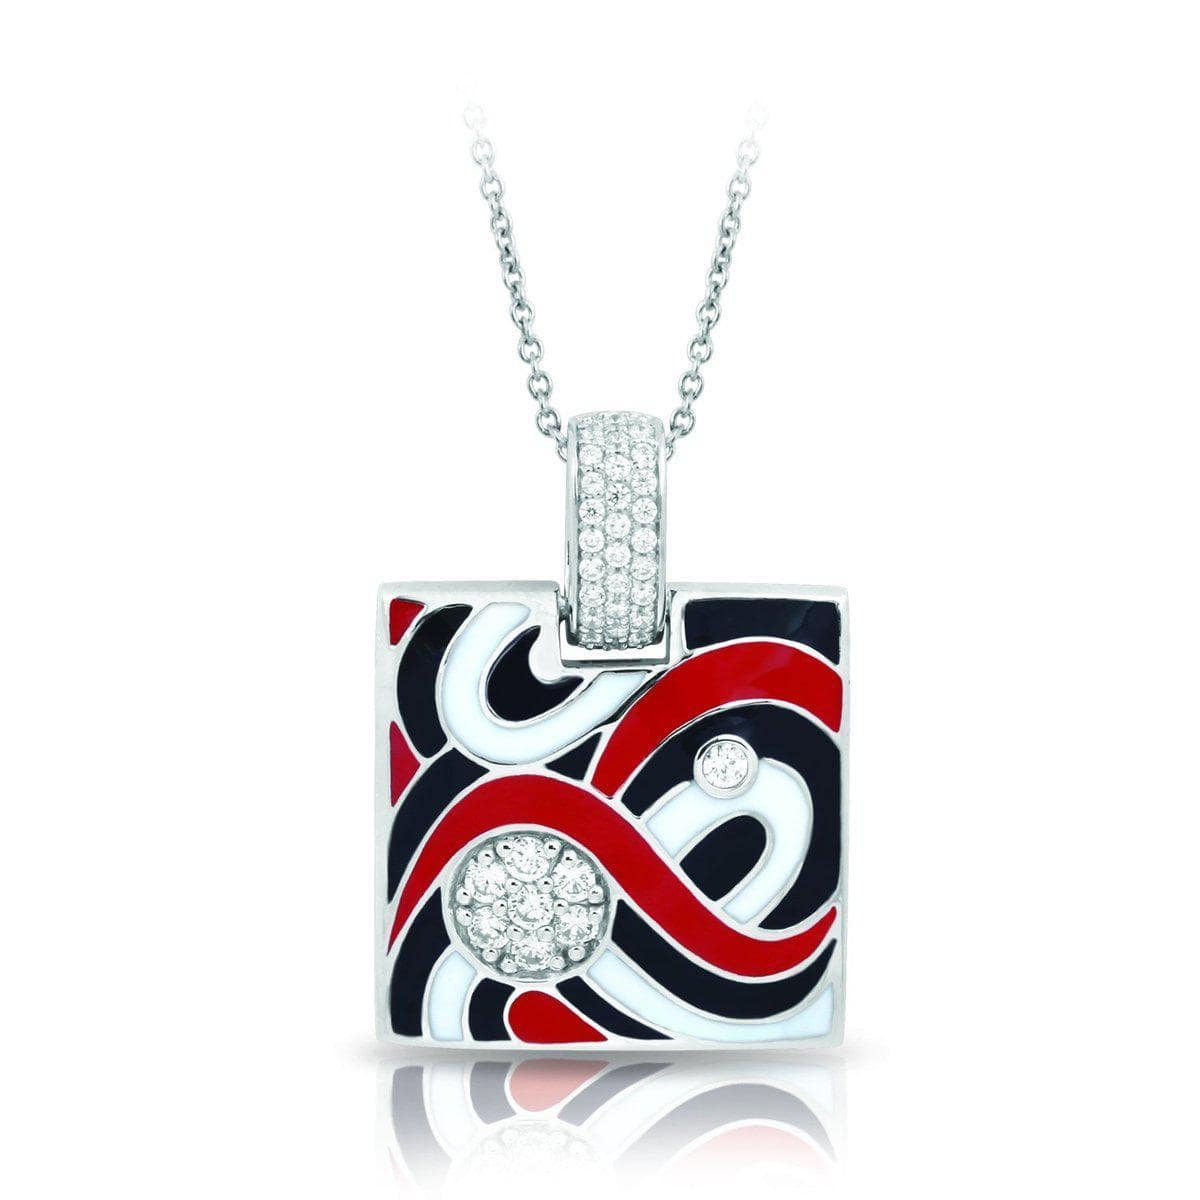 Vortice Black and Red Pendant-Belle Etoile-Renee Taylor Gallery